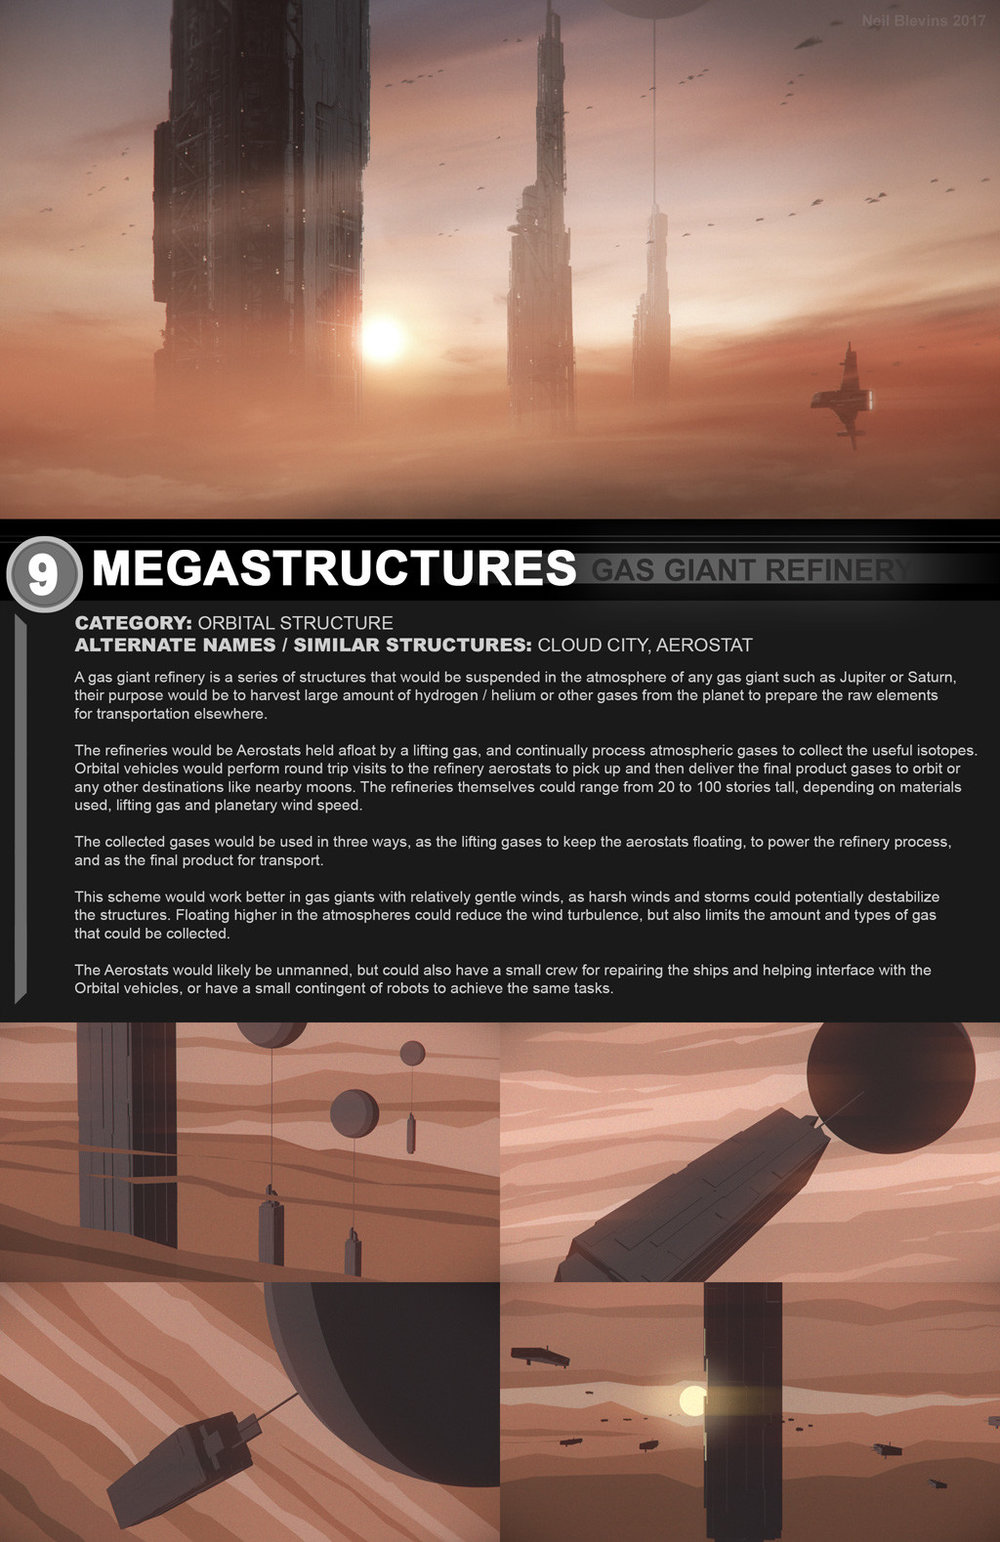 neil-blevins-megastructures-9-gas-giant-refinery-design-packet.jpg